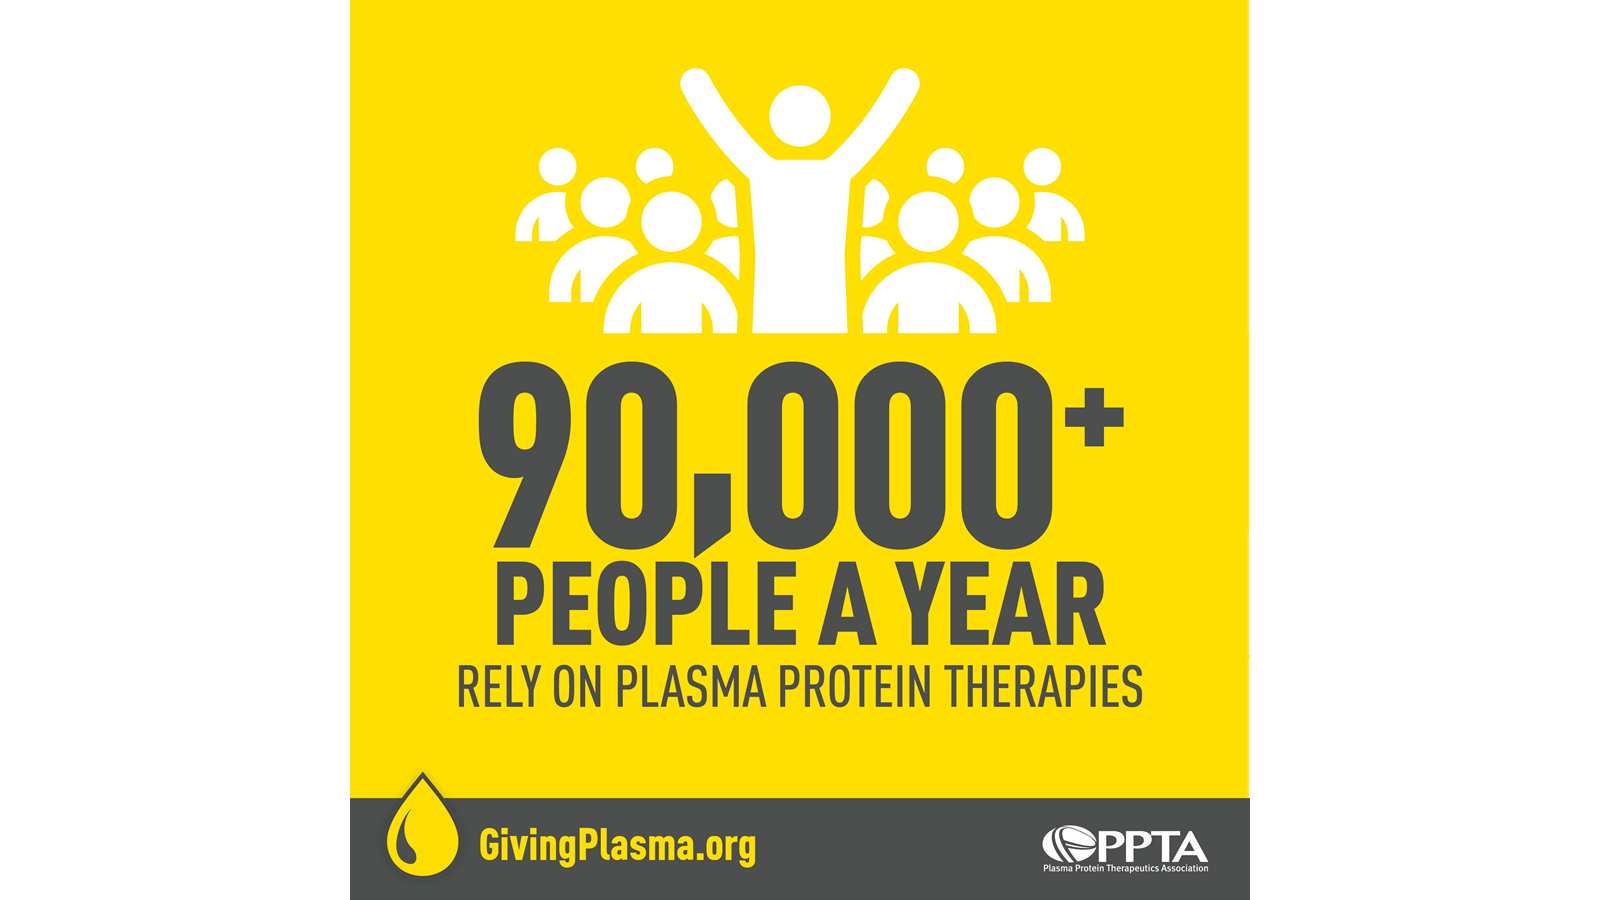 90,000 people a year rely on plasma protein therapies